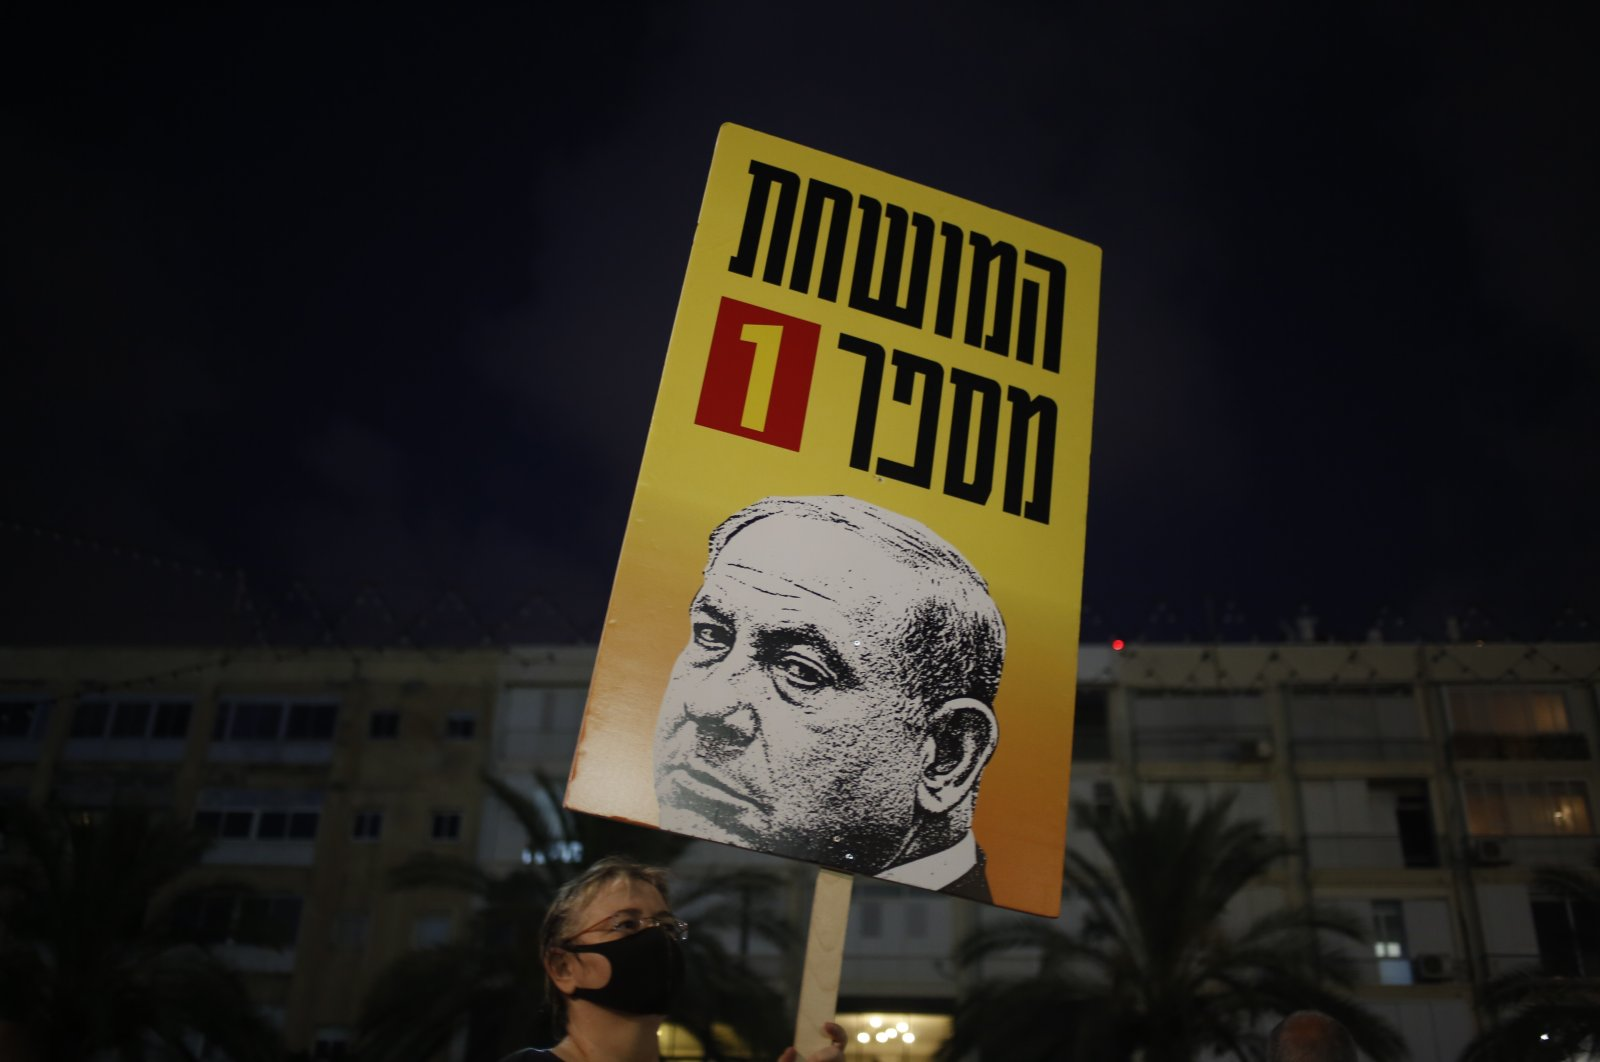 Protesters hold signs during a demonstration against Israel's government in Rabin Square, Tel Aviv, July 11, 2020. (AP Photo)